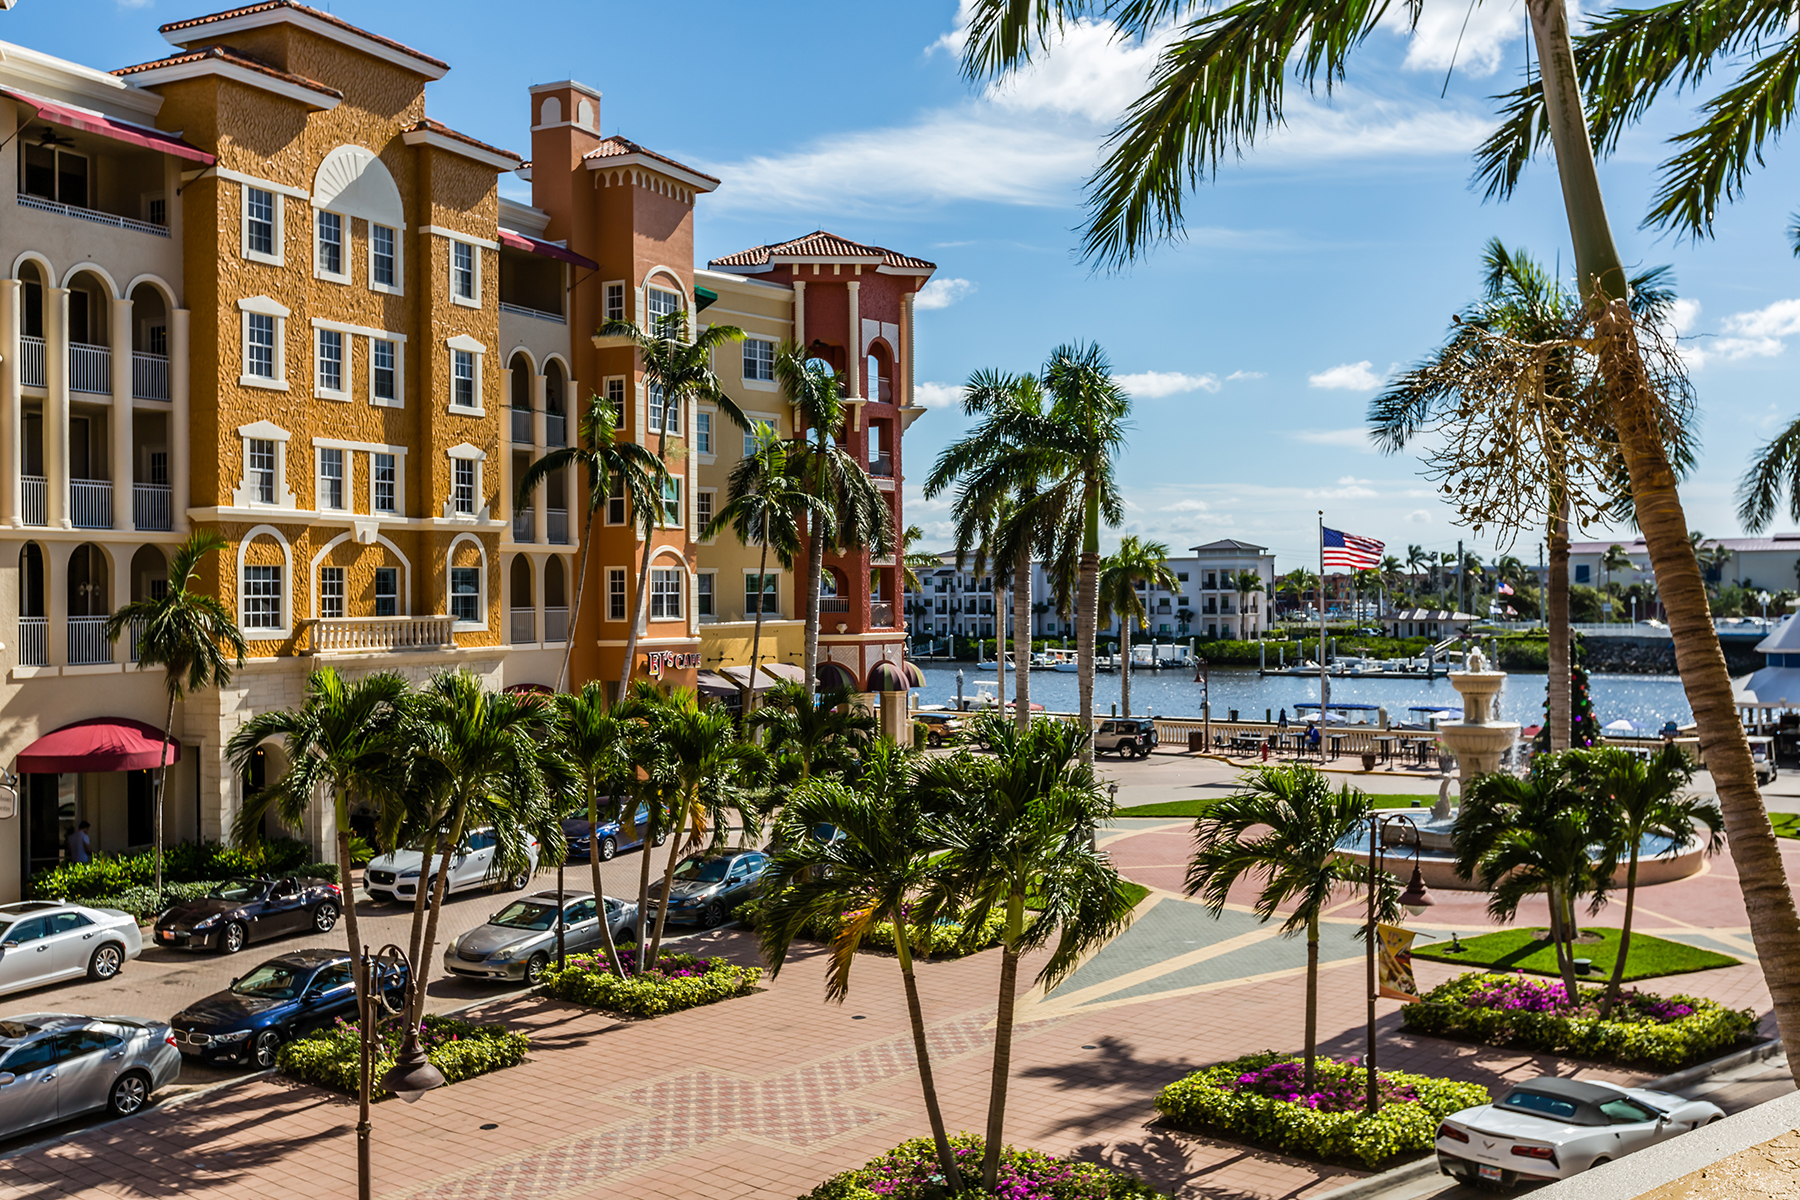 Condominium for Sale at BAYFRONT 450 Bayfront Pl 4202, Old Naples, Naples, Florida, 34102 United States